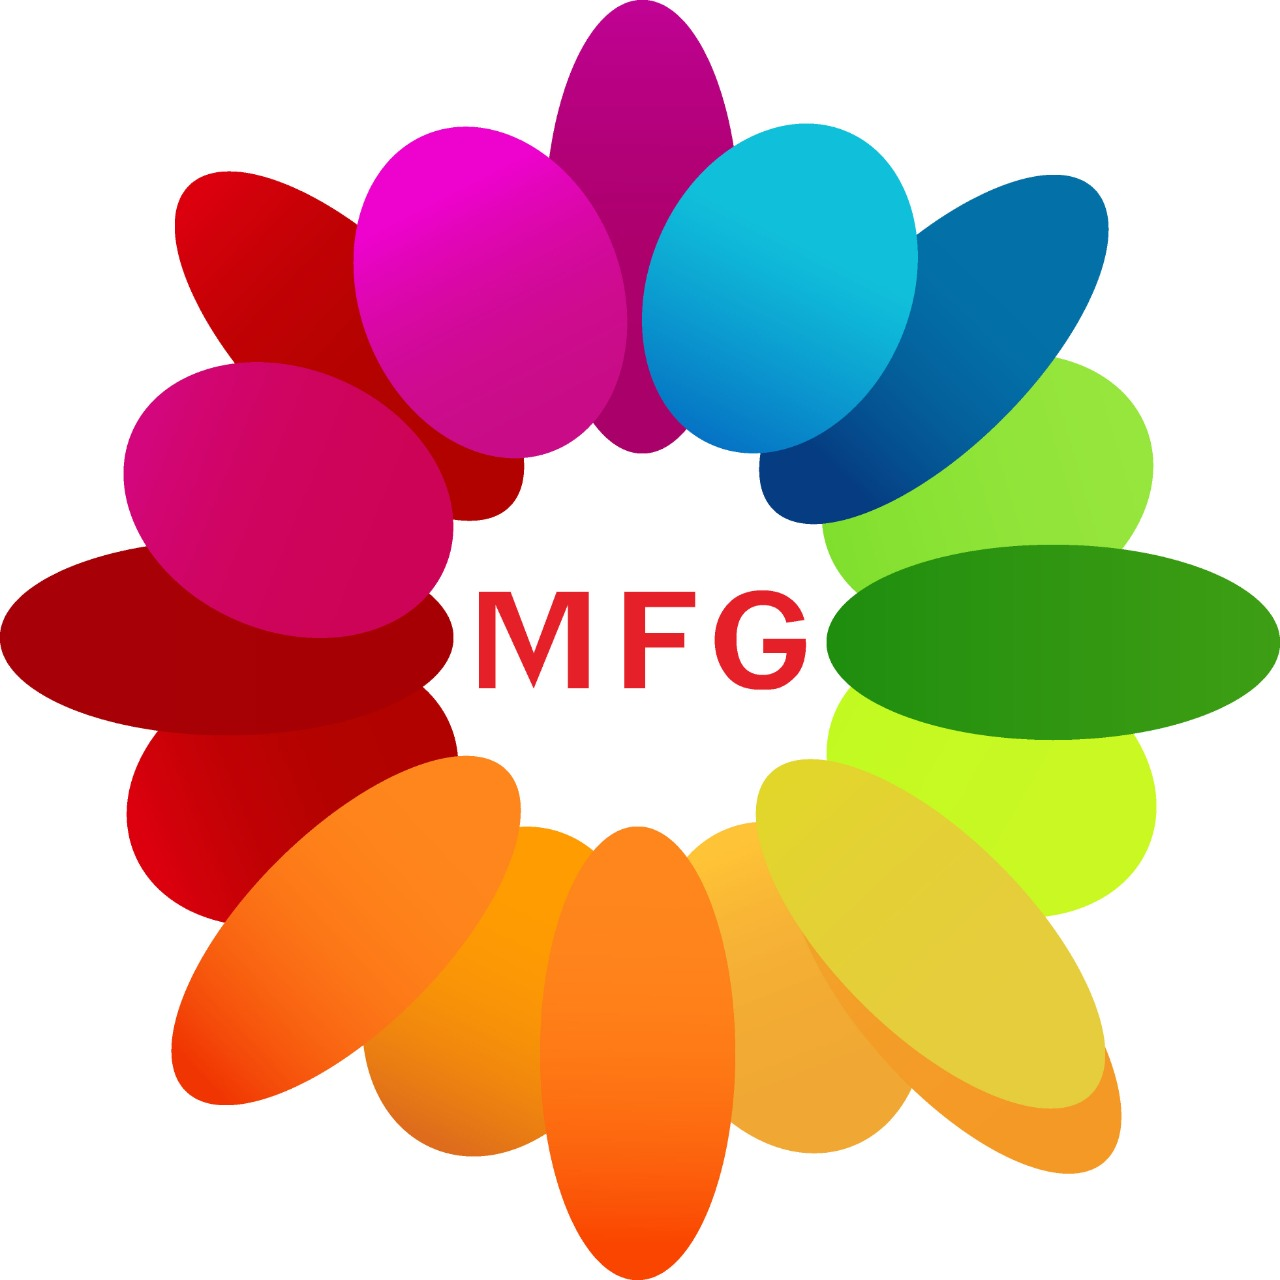 100 Red Roses Arrangement With 2 Feet Height